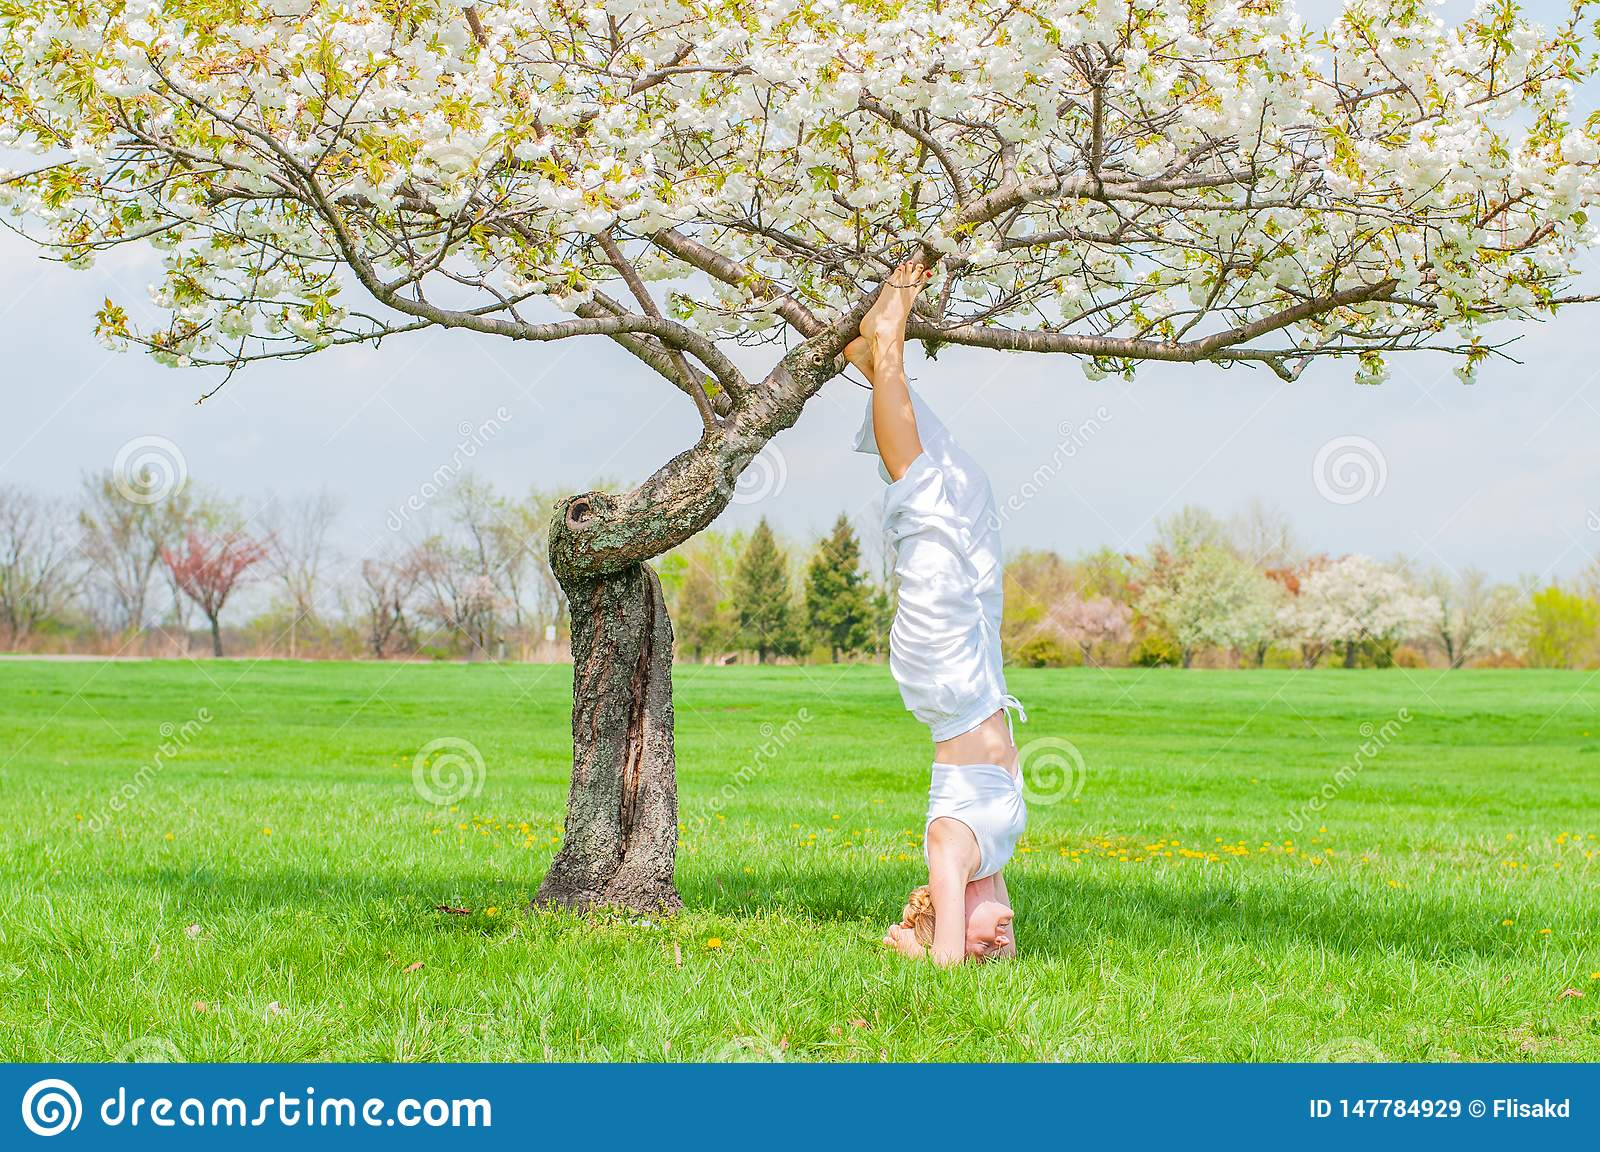 Woman is practicing yoga, doing Salamba Sirsasana exercise, standing in headstand pose near tree